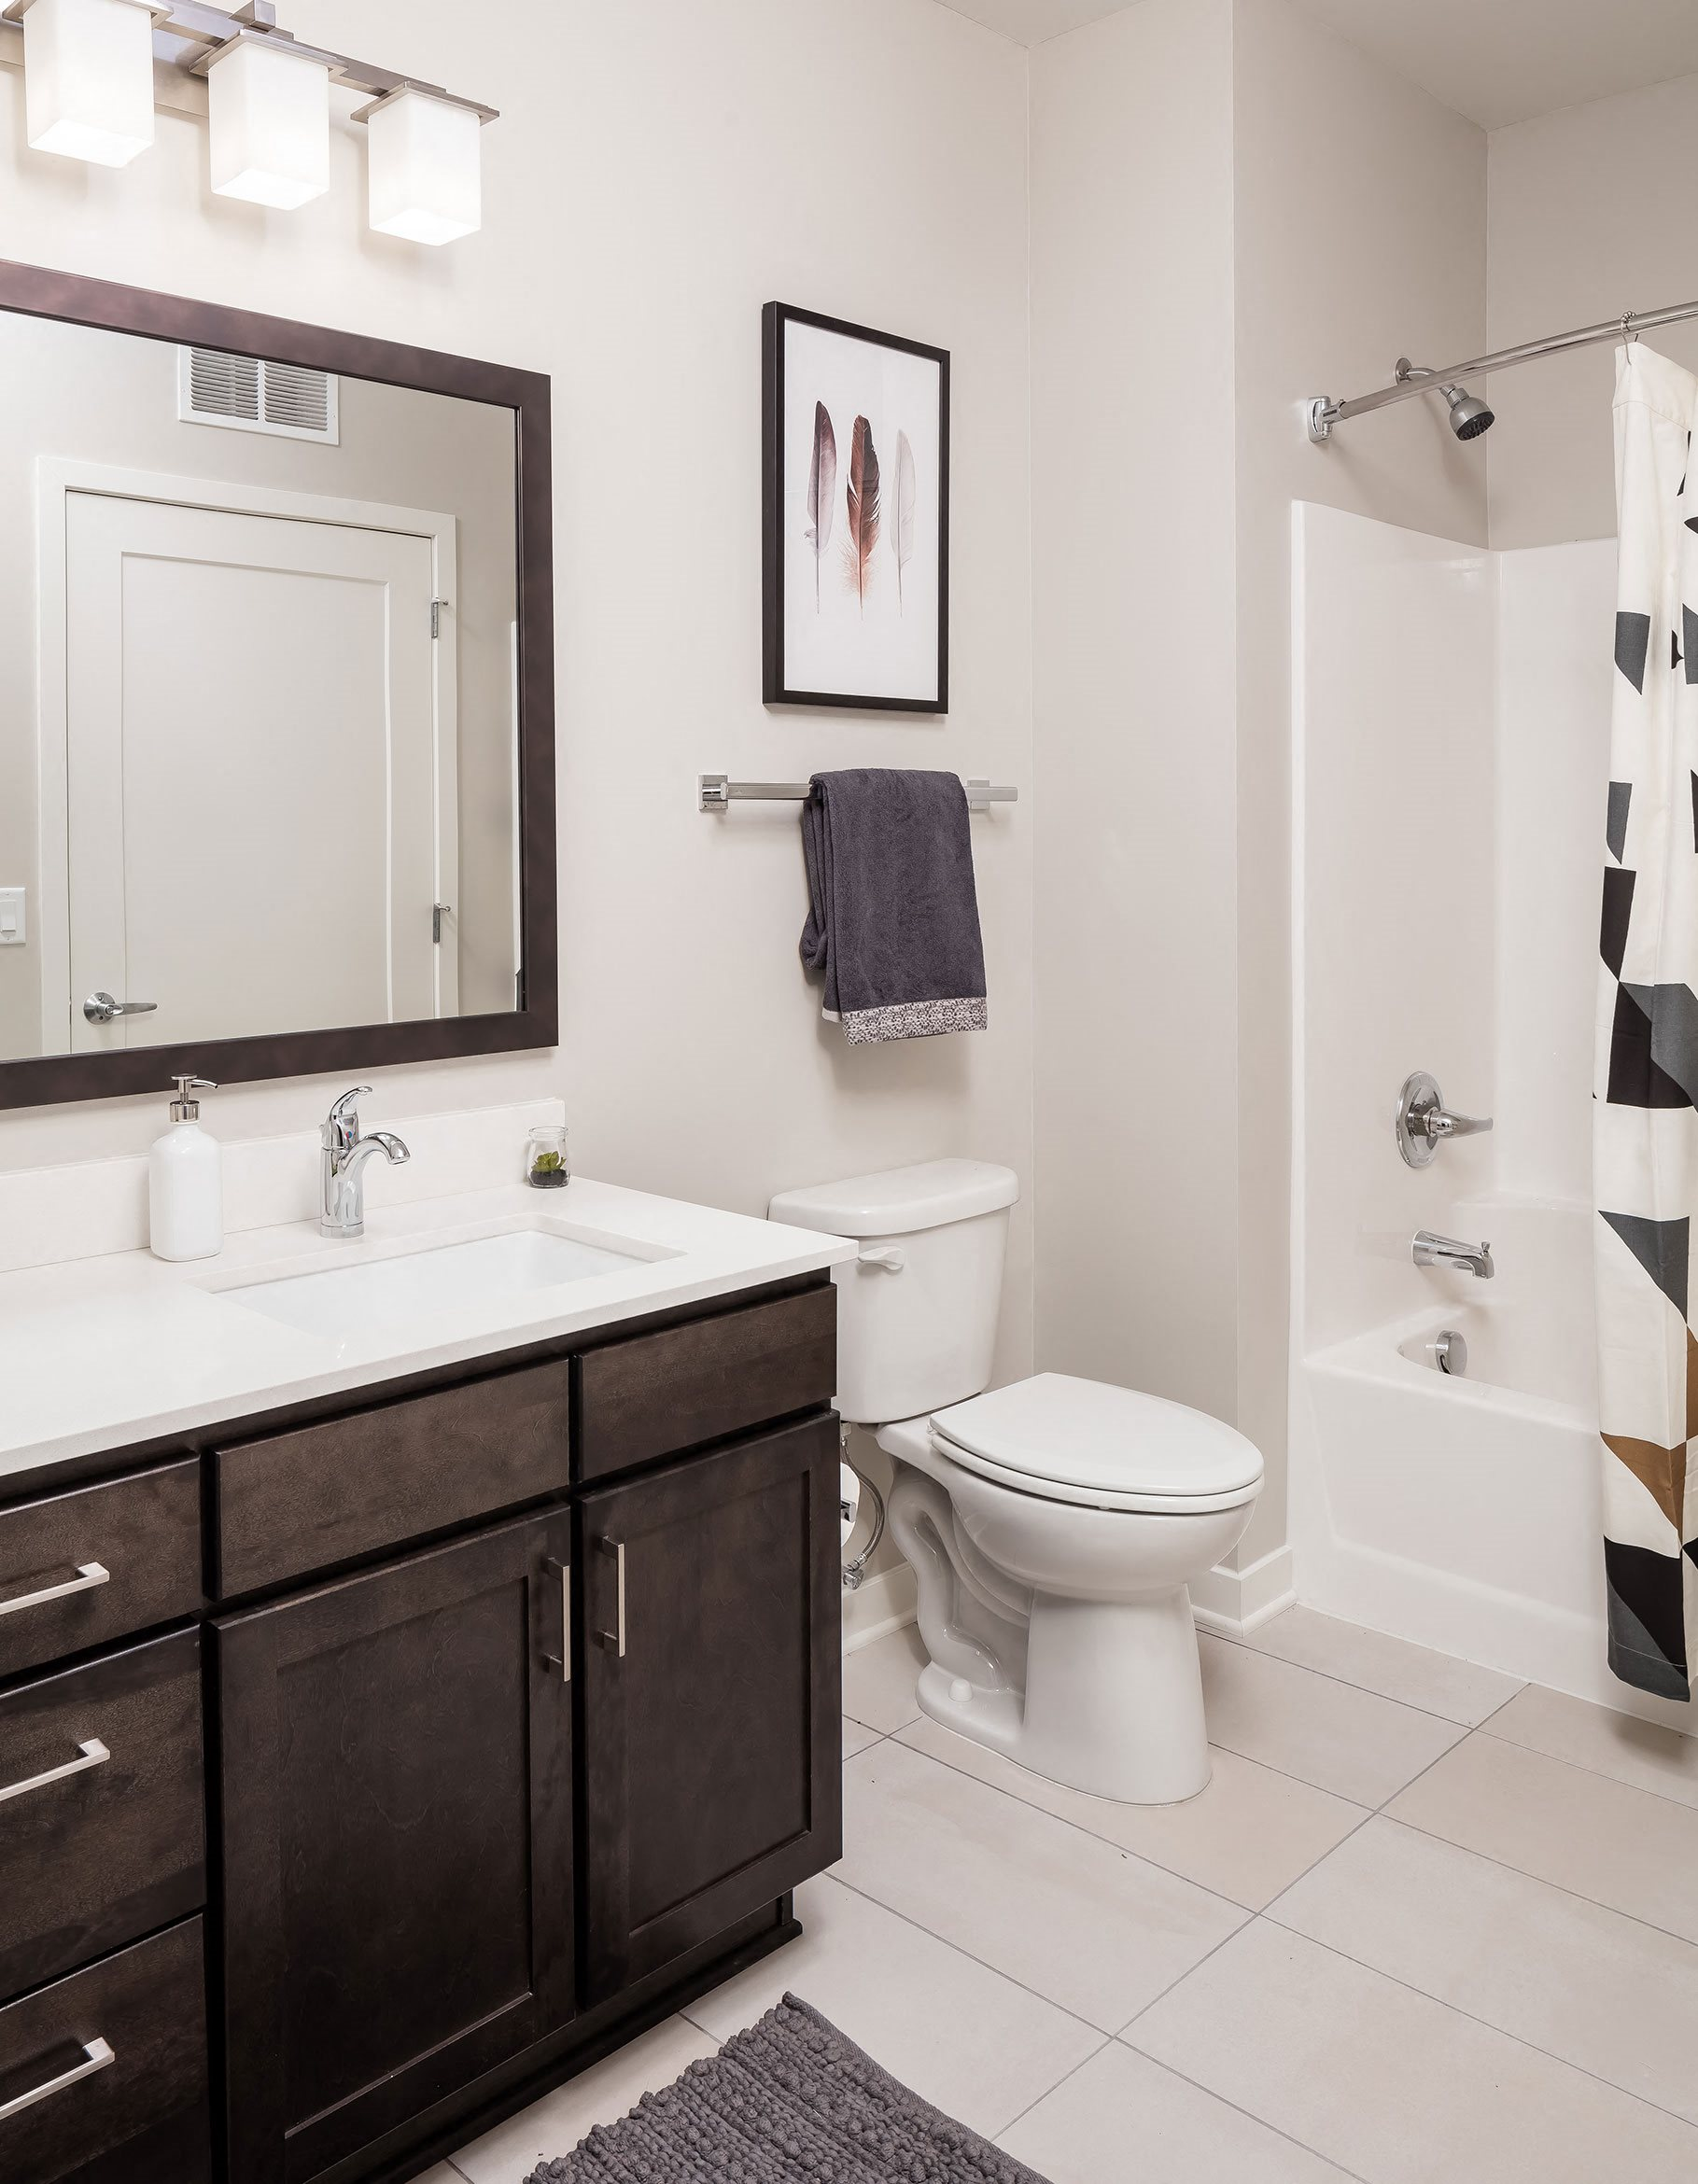 Furnished Apartment Bathroom Foundry Lake Street Apartments